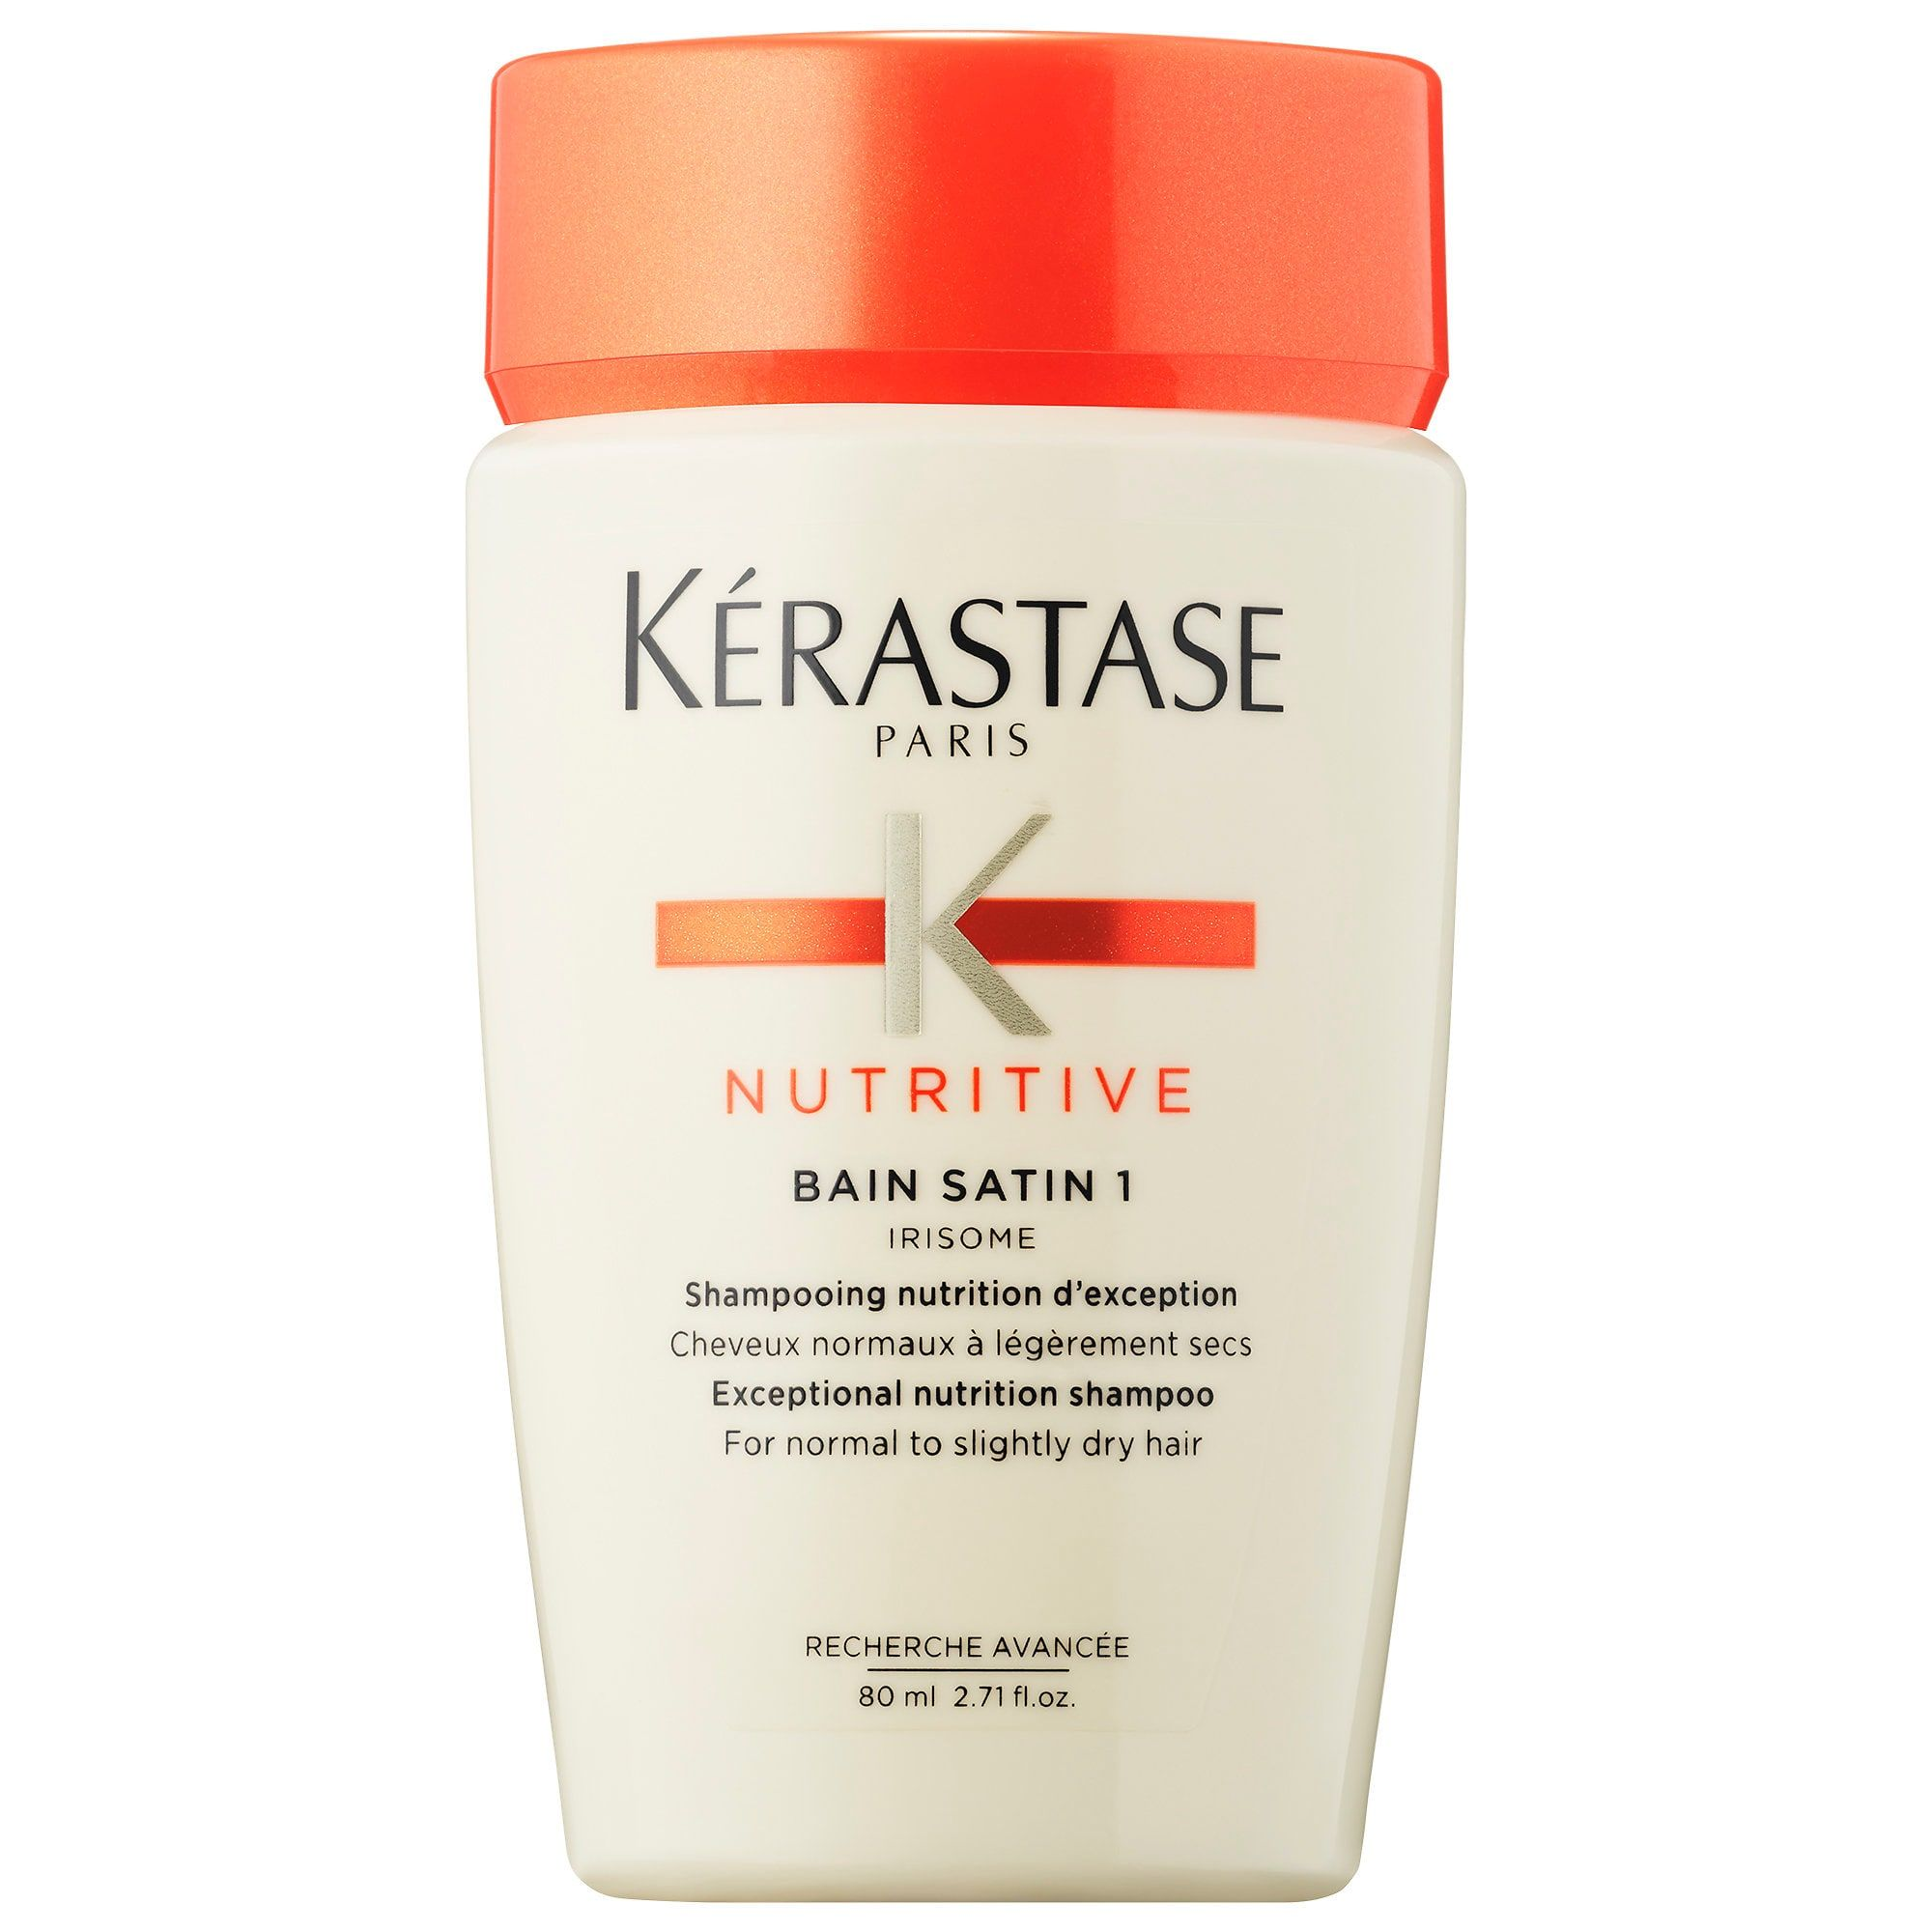 Nutritive Shampoo For Normal To Dry Hair Mini Kerastase Sephora In 2020 Dry Hair Shampoo Kerastase